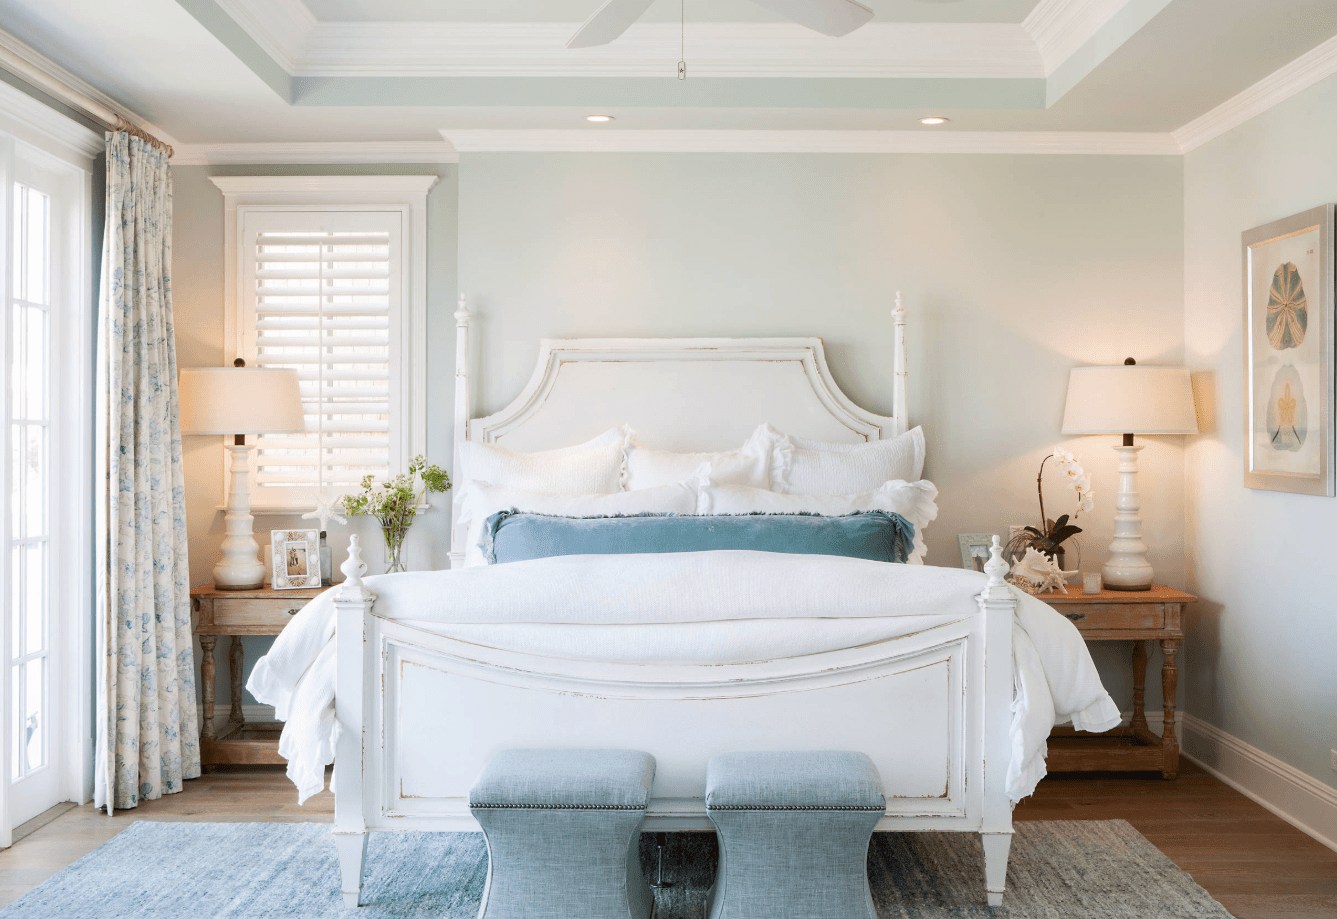 Beach primary bedroom features white bed surrounded with light blue walls and framed windows. It sits on a gray rug over hardwood flooring.